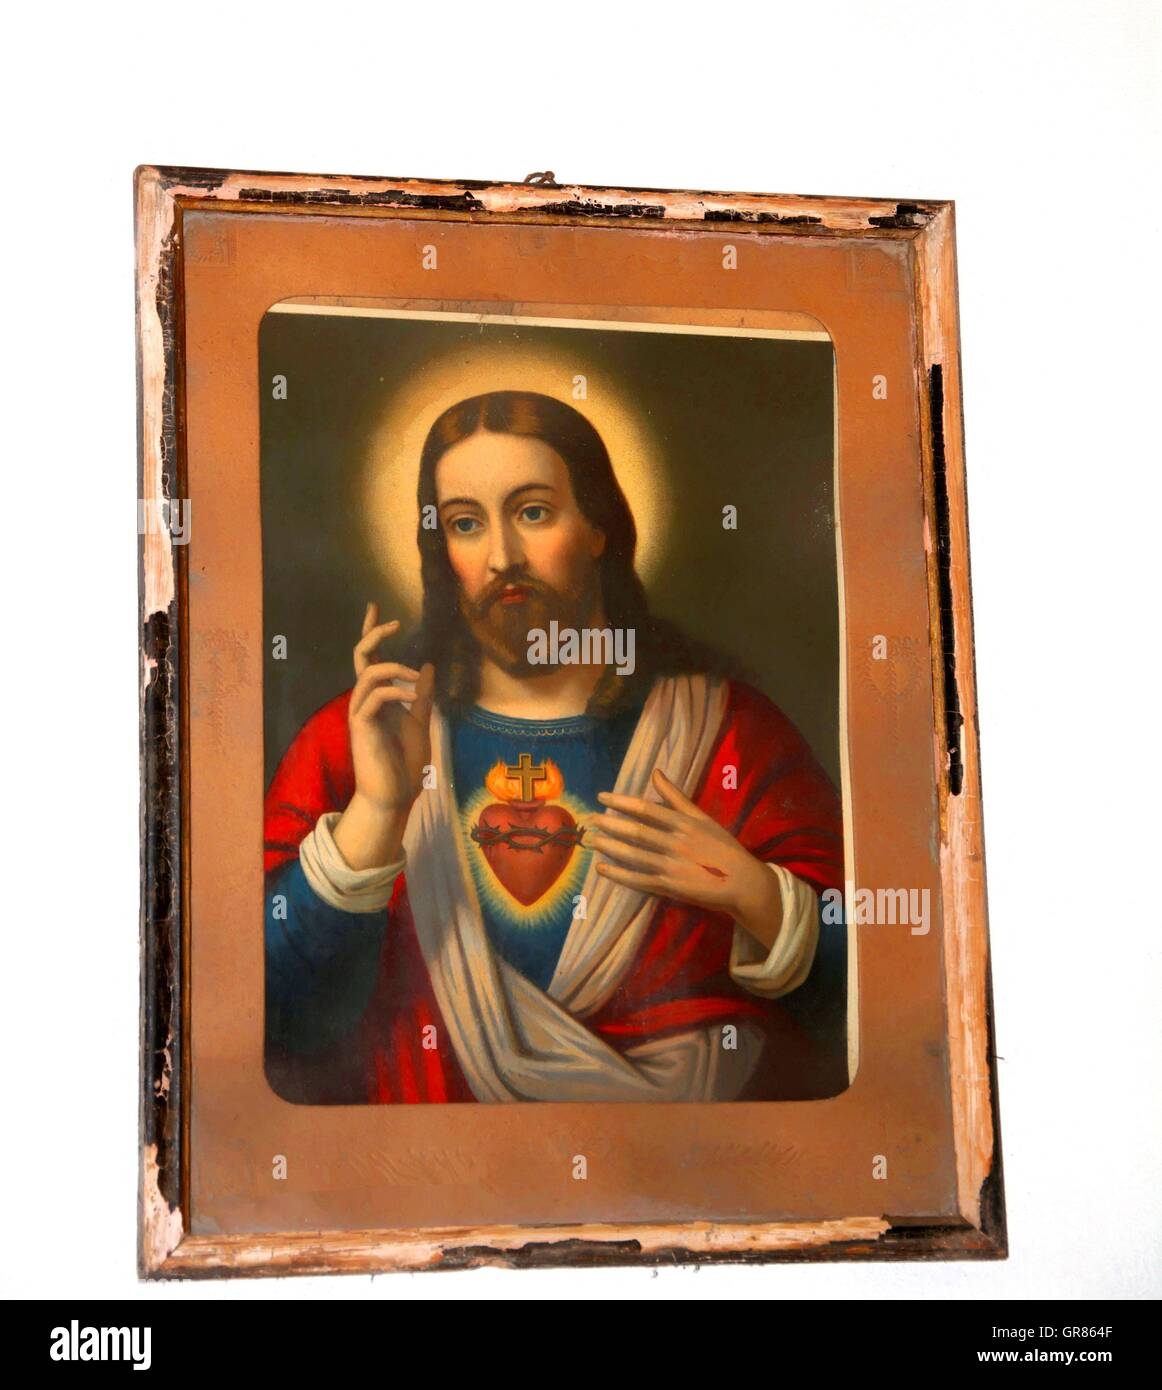 Retro Holy Picture, Heart Of Jesus Devotional Image - Stock Image